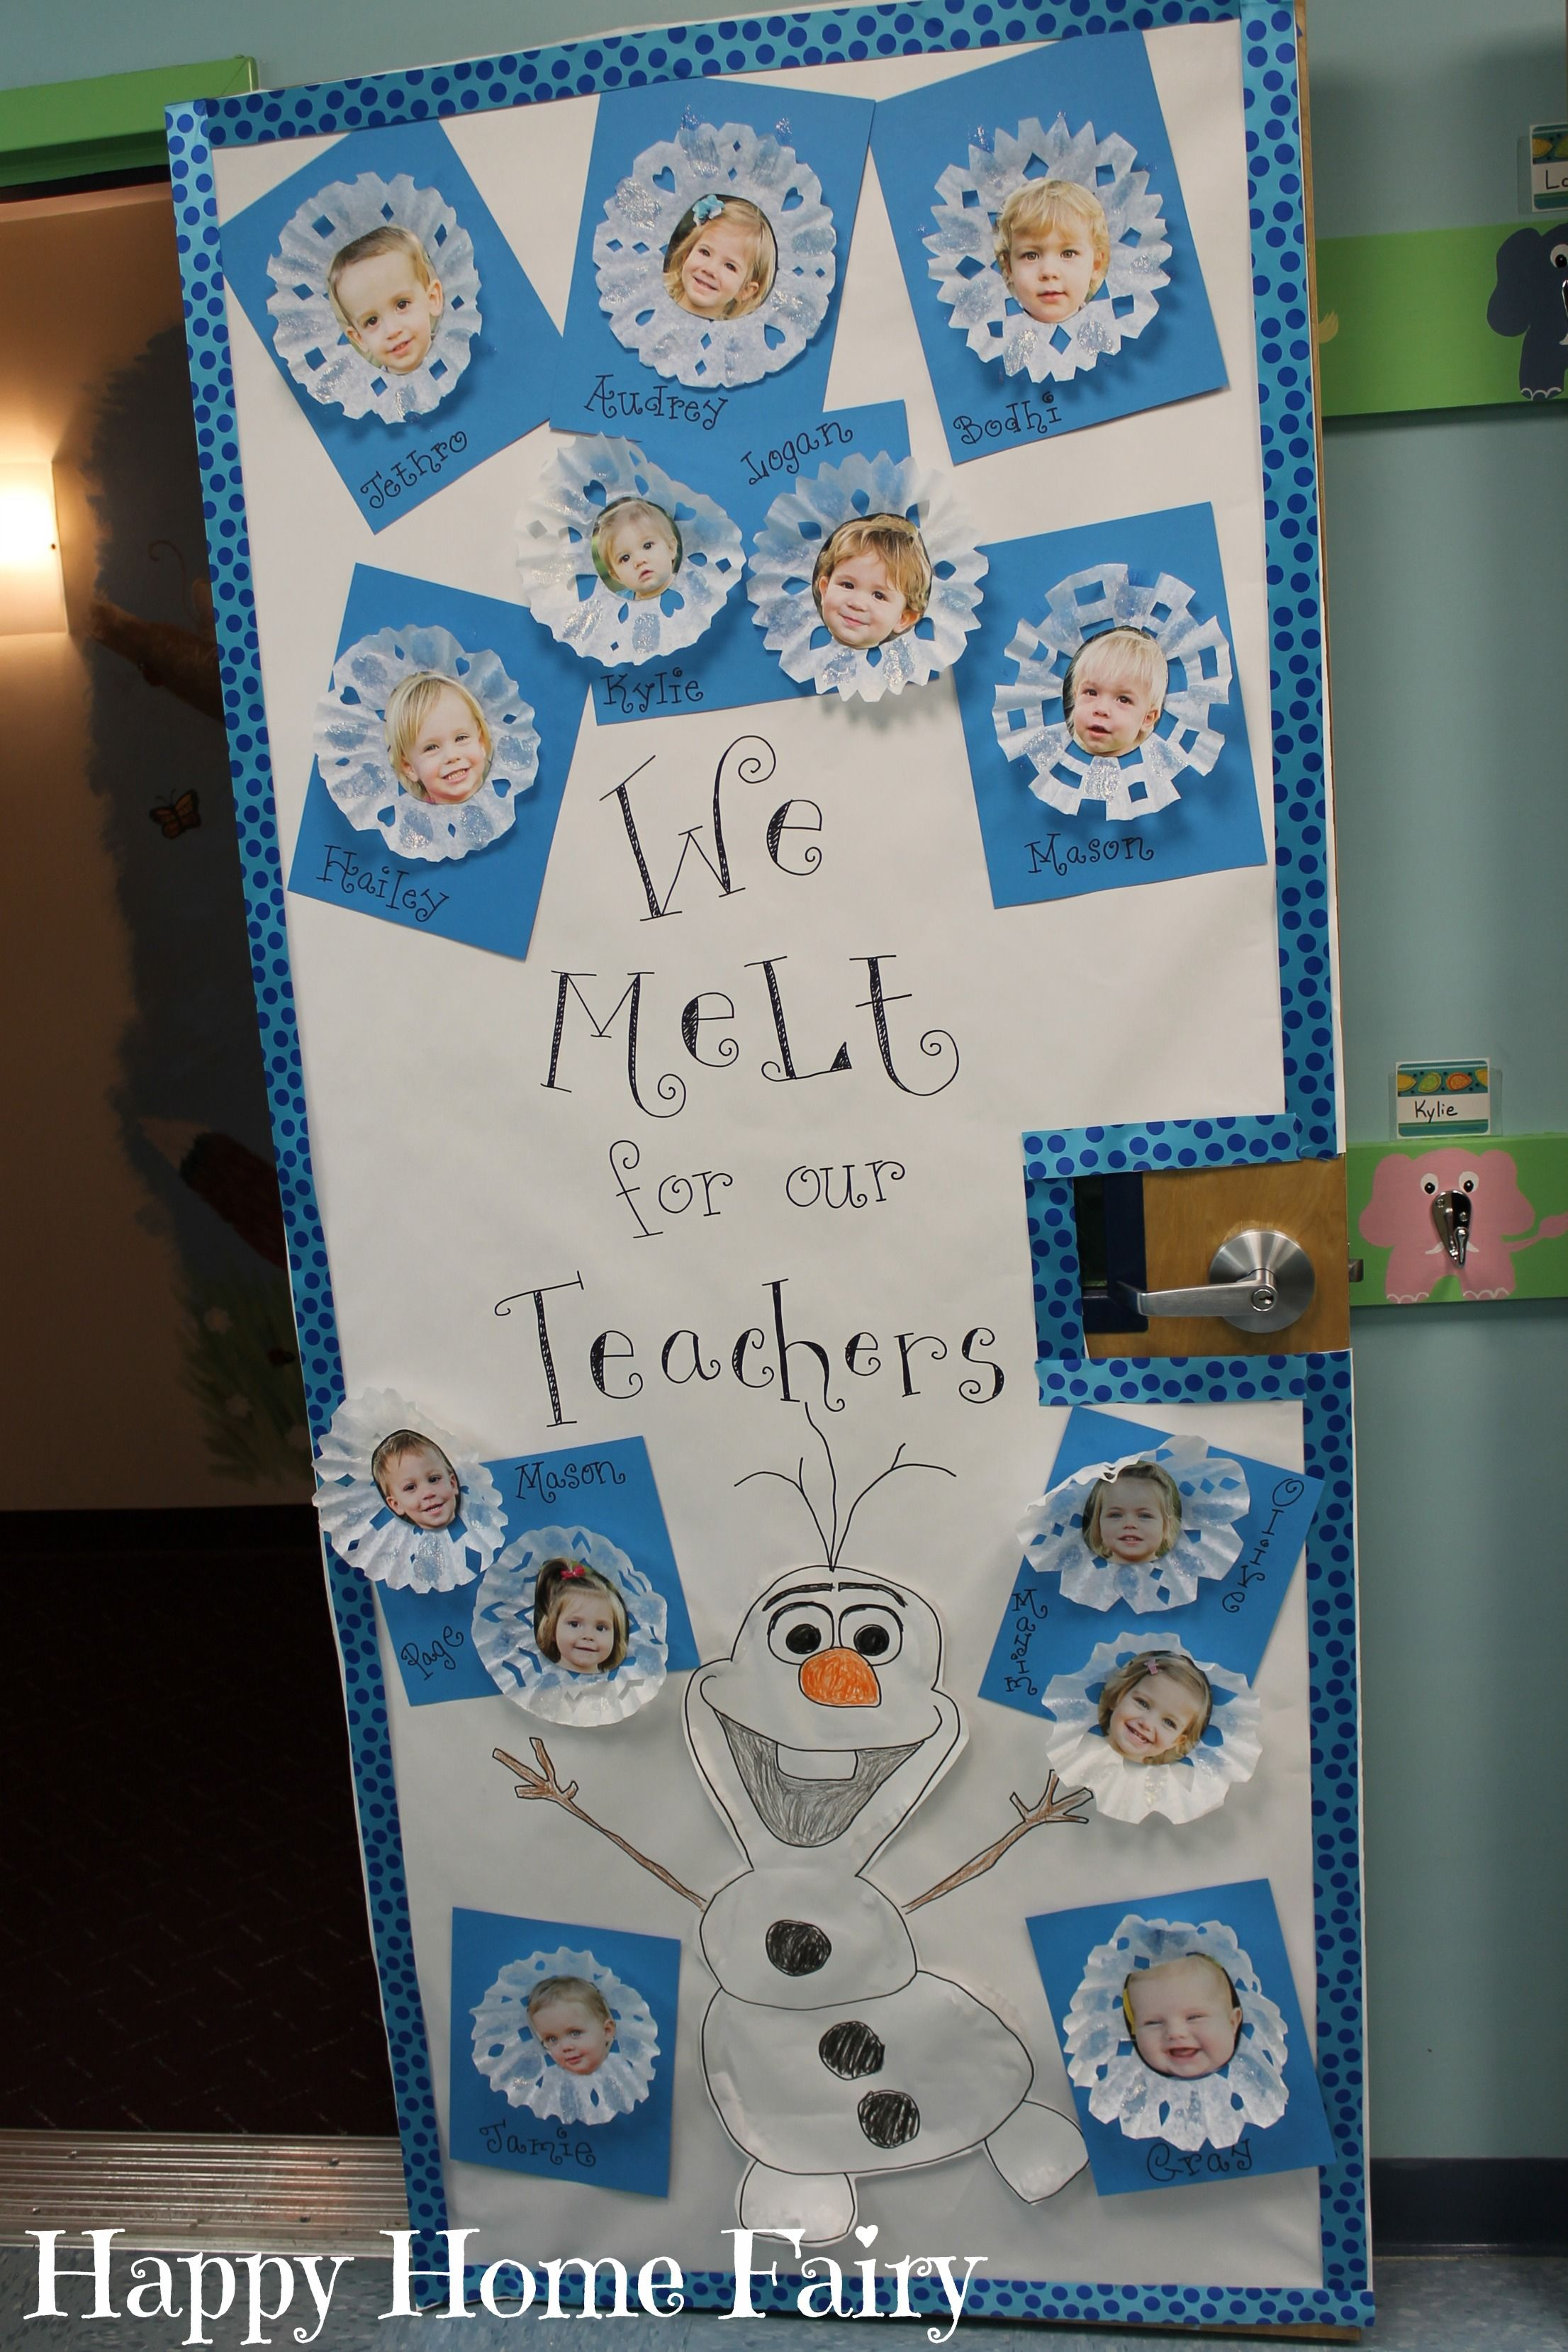 Winter Wonderland Preschool Classroom Decorations : Adorable teacher appreciation door idea